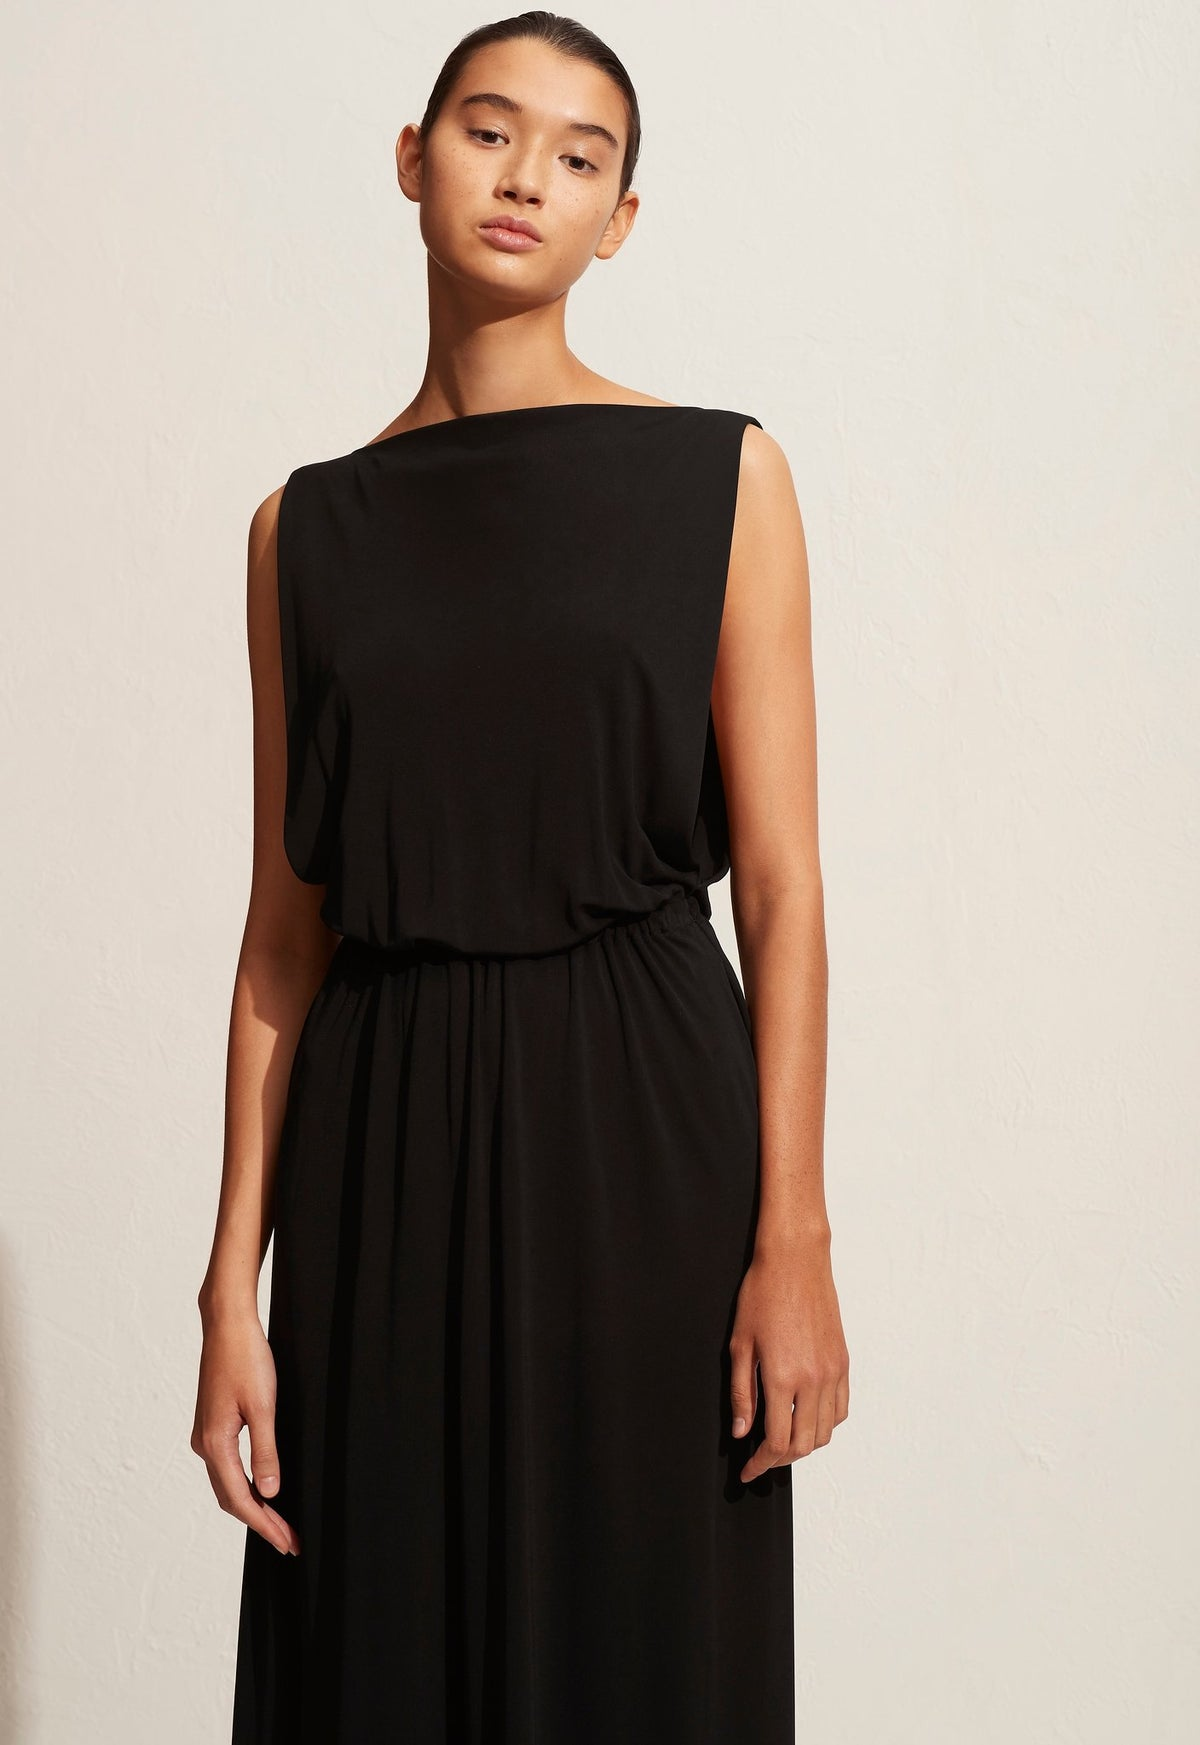 The Jersey Boatneck Dress